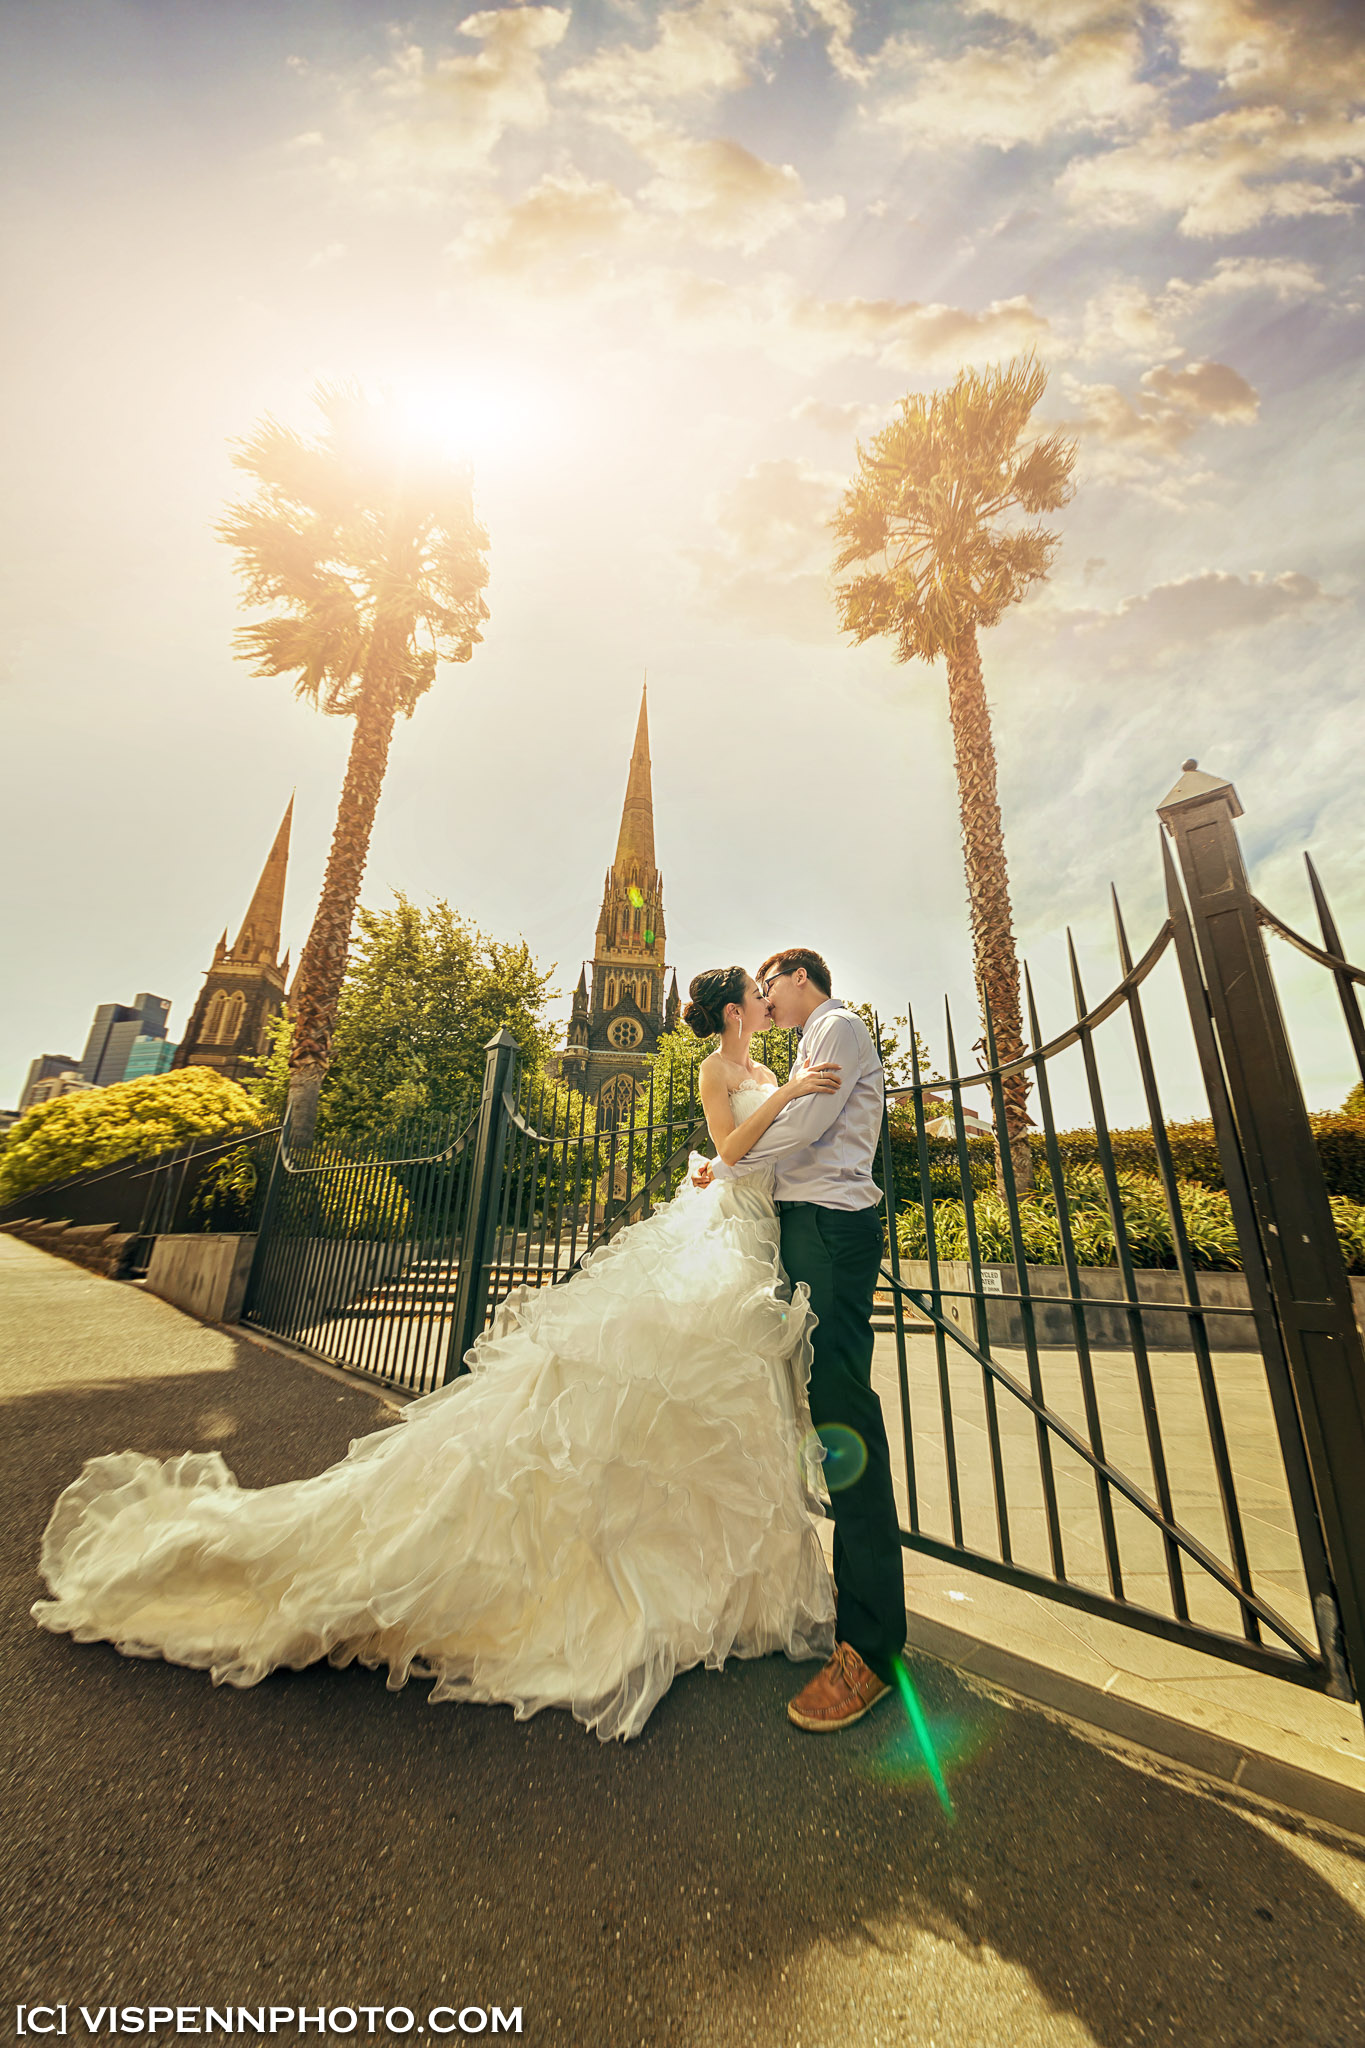 PRE WEDDING Photography Melbourne KarenCai 3362 1